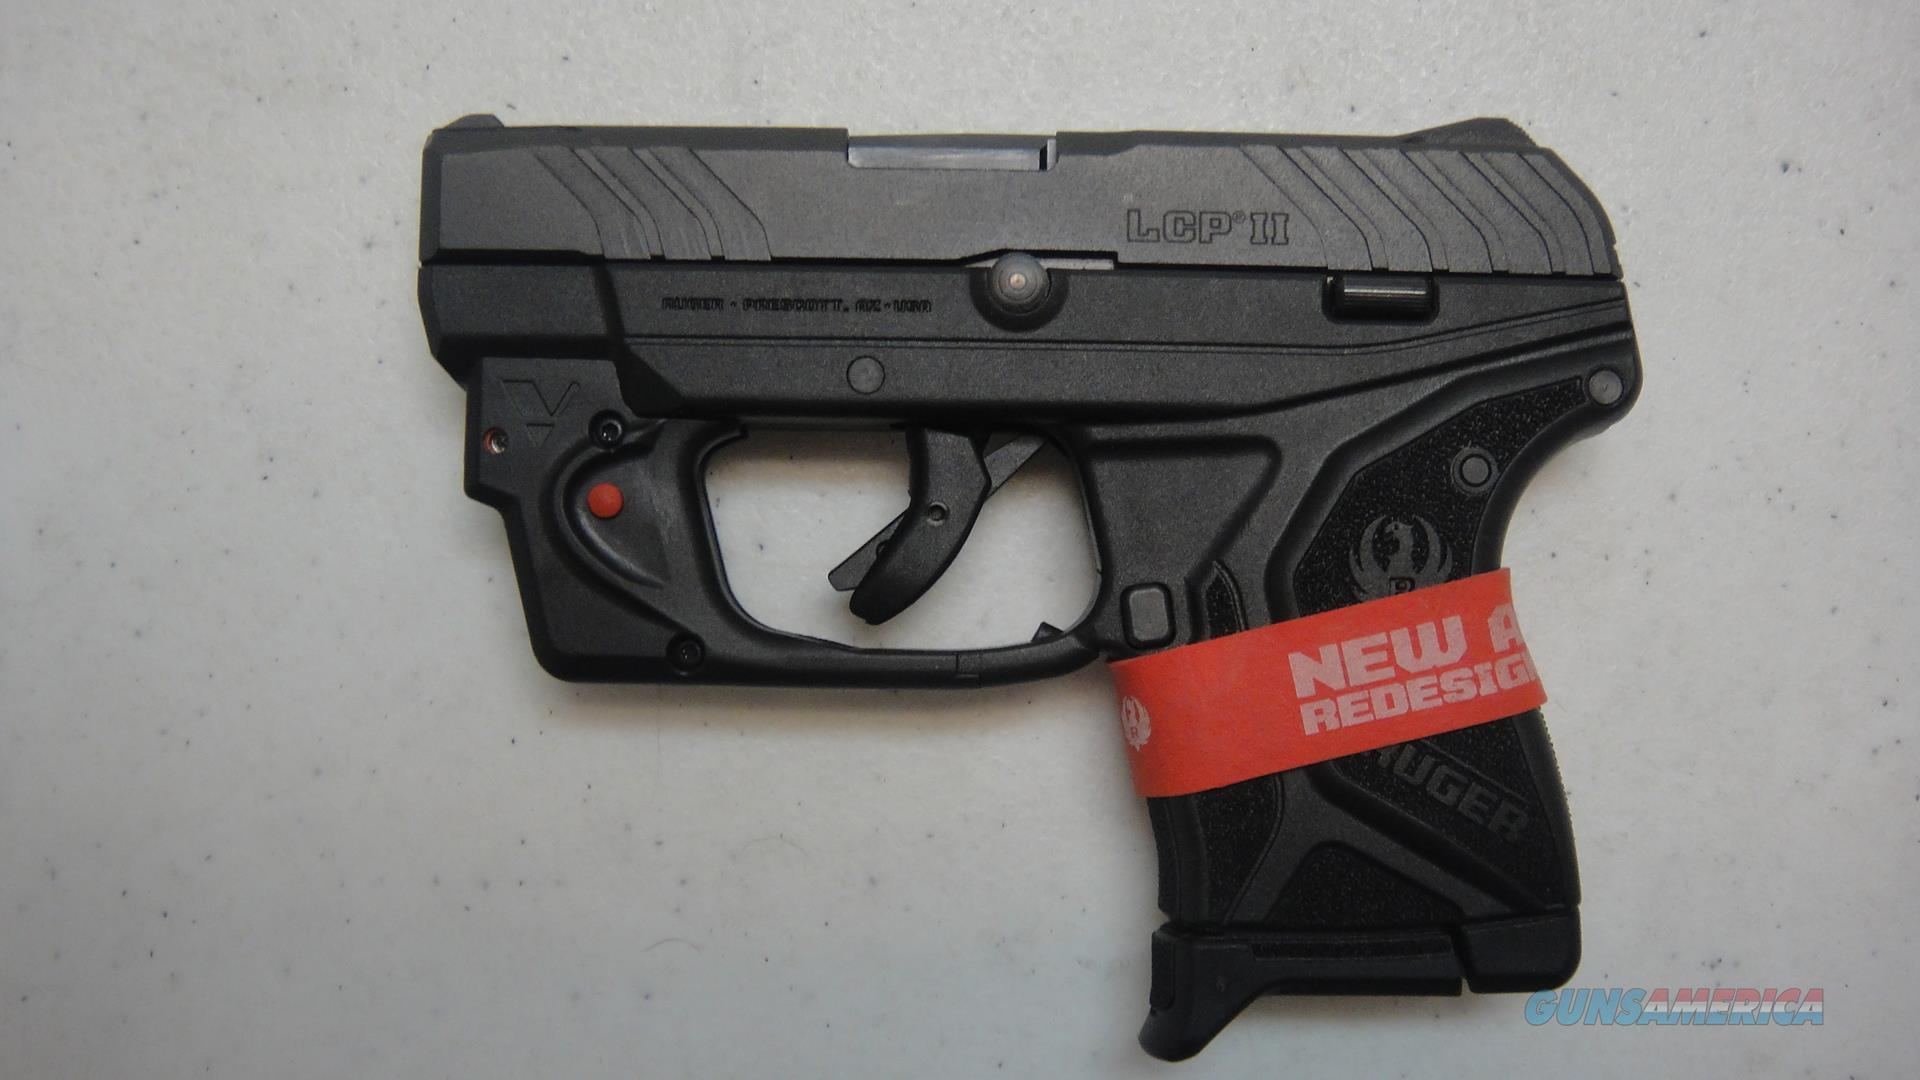 Ruger LCP II w/ viridian laser  Guns > Pistols > Ruger Semi-Auto Pistols > LCP